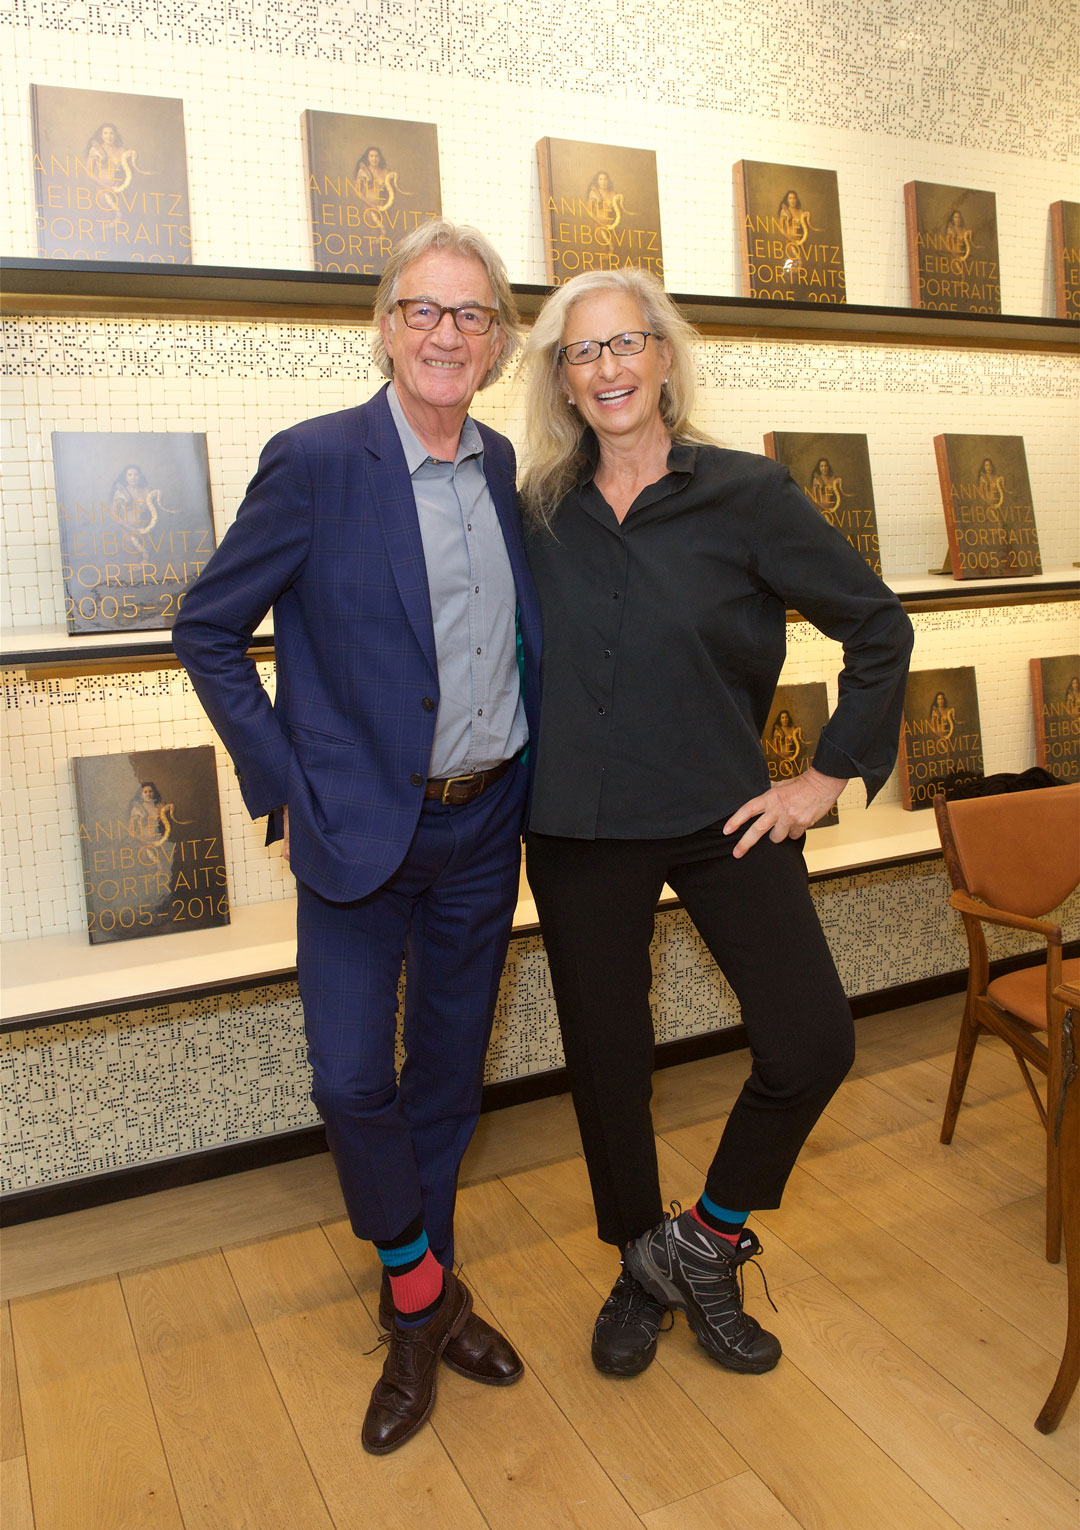 Sir Paul Smith and Annie Leibovitz put their best foot (and socks) forward